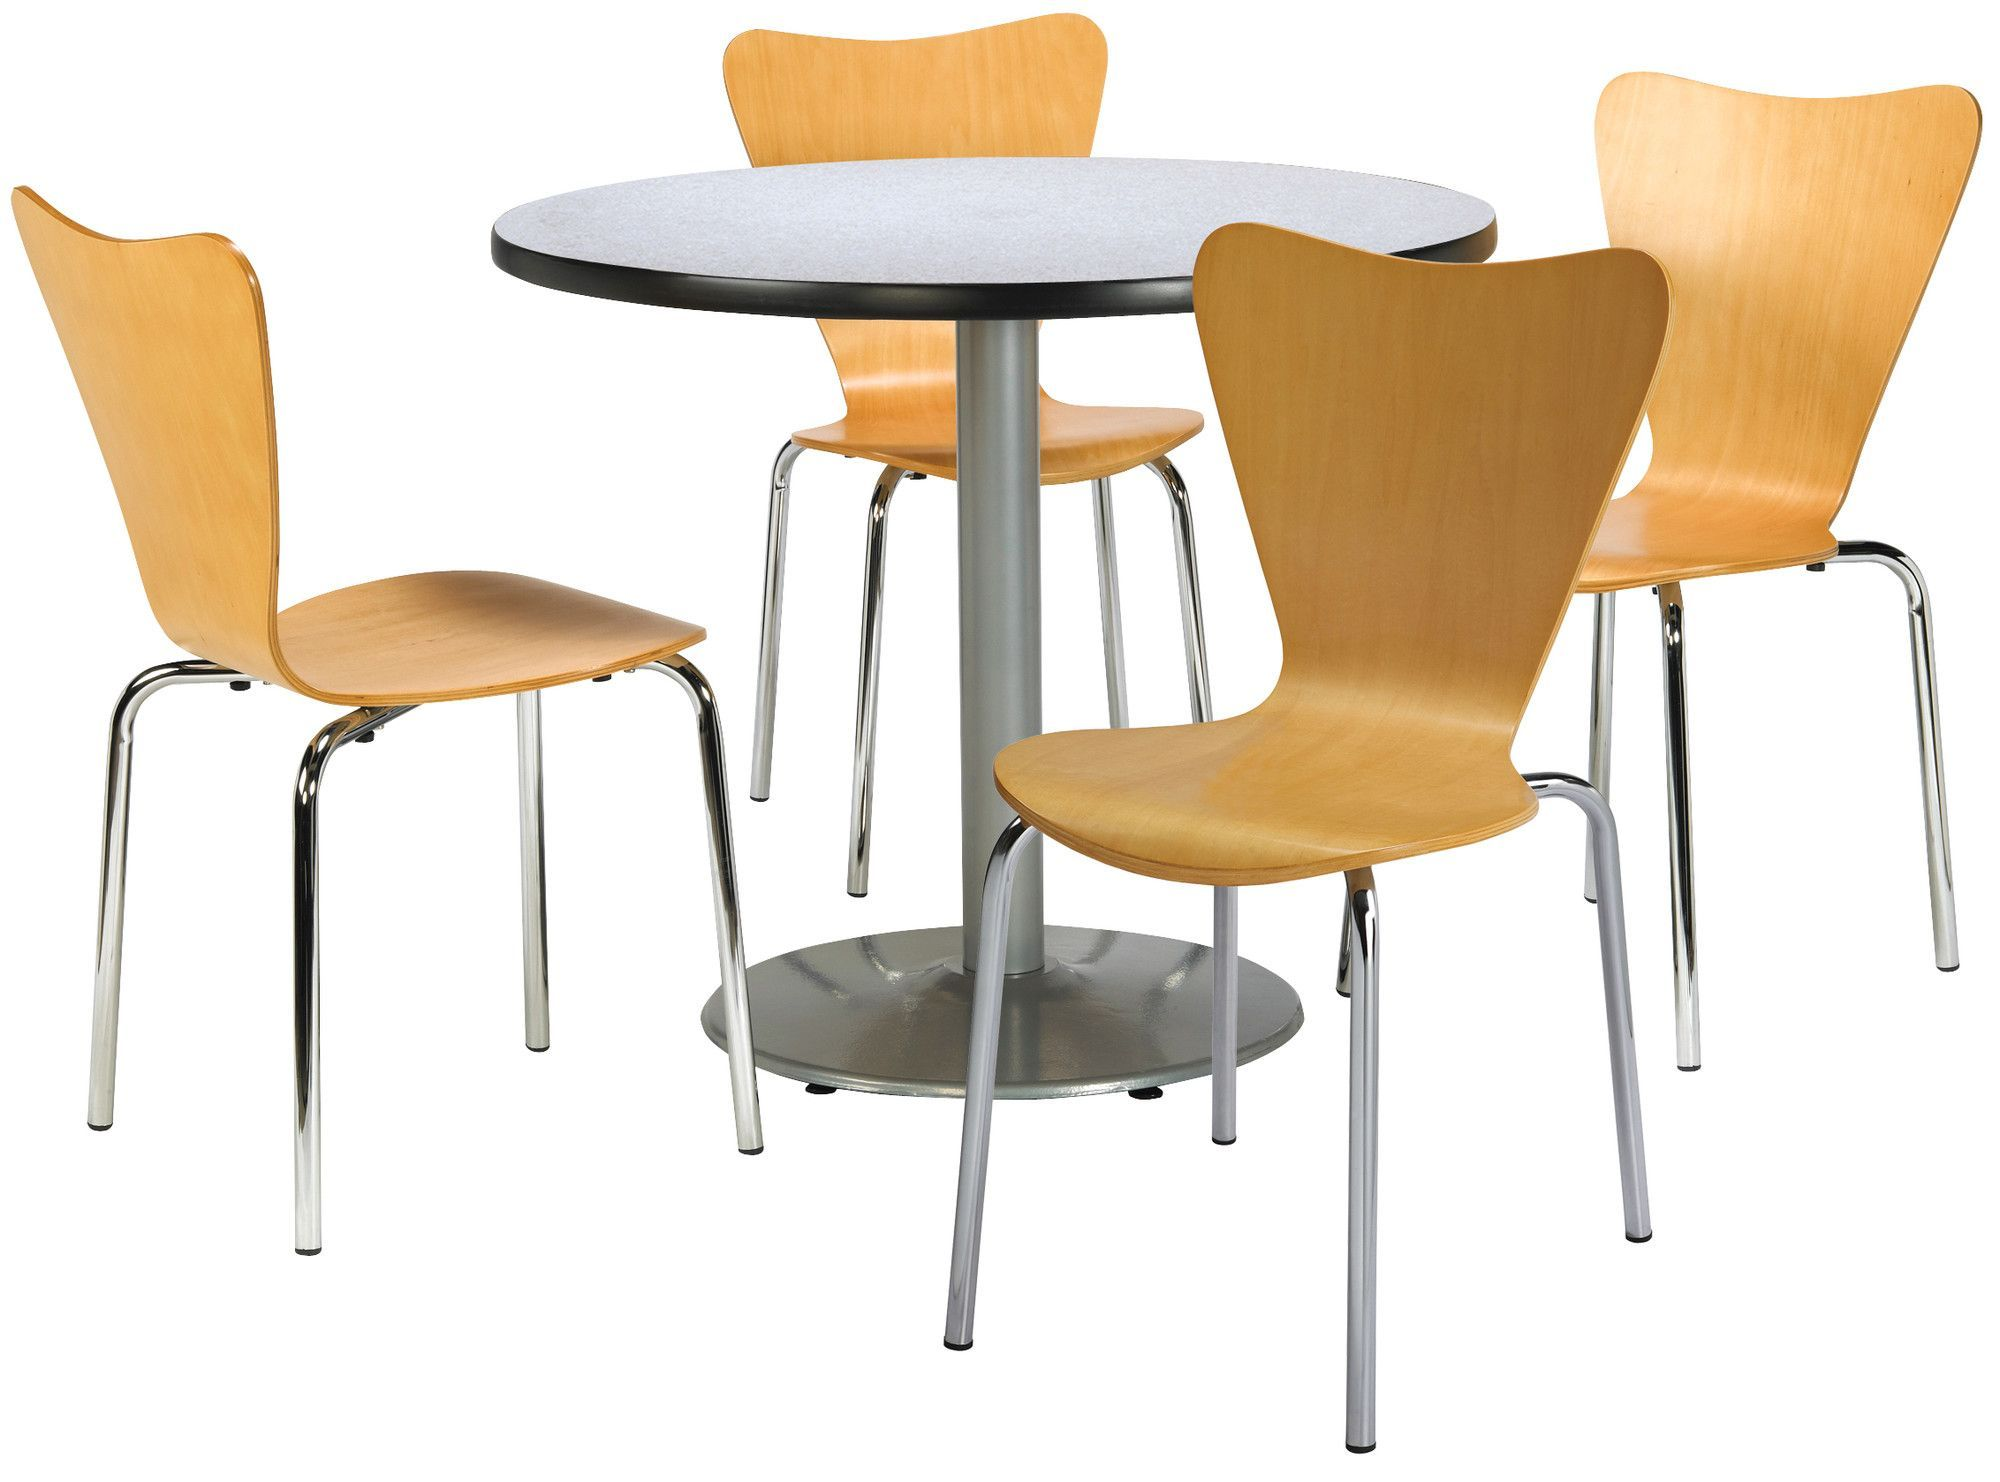 Adda 5 Piece Dining Set 5 Piece Dining Set Cafe Chairs Bentwood Chairs